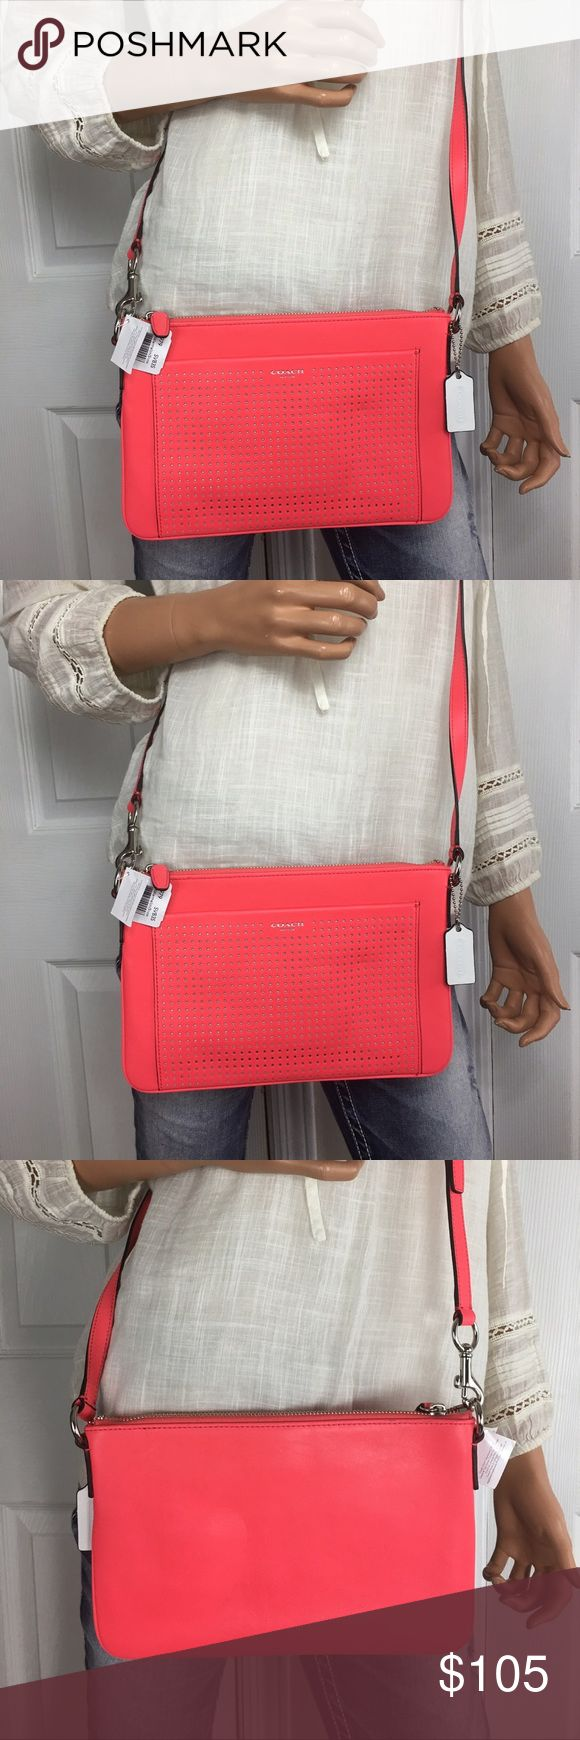 NWT Coach Legacy Leather Crossbody Brand new w tags ! Coach Leather Legacy Perforated Swingpack!!  Inside has a khaki lining with one slip pocket ! Coach Bags Crossbody Bags